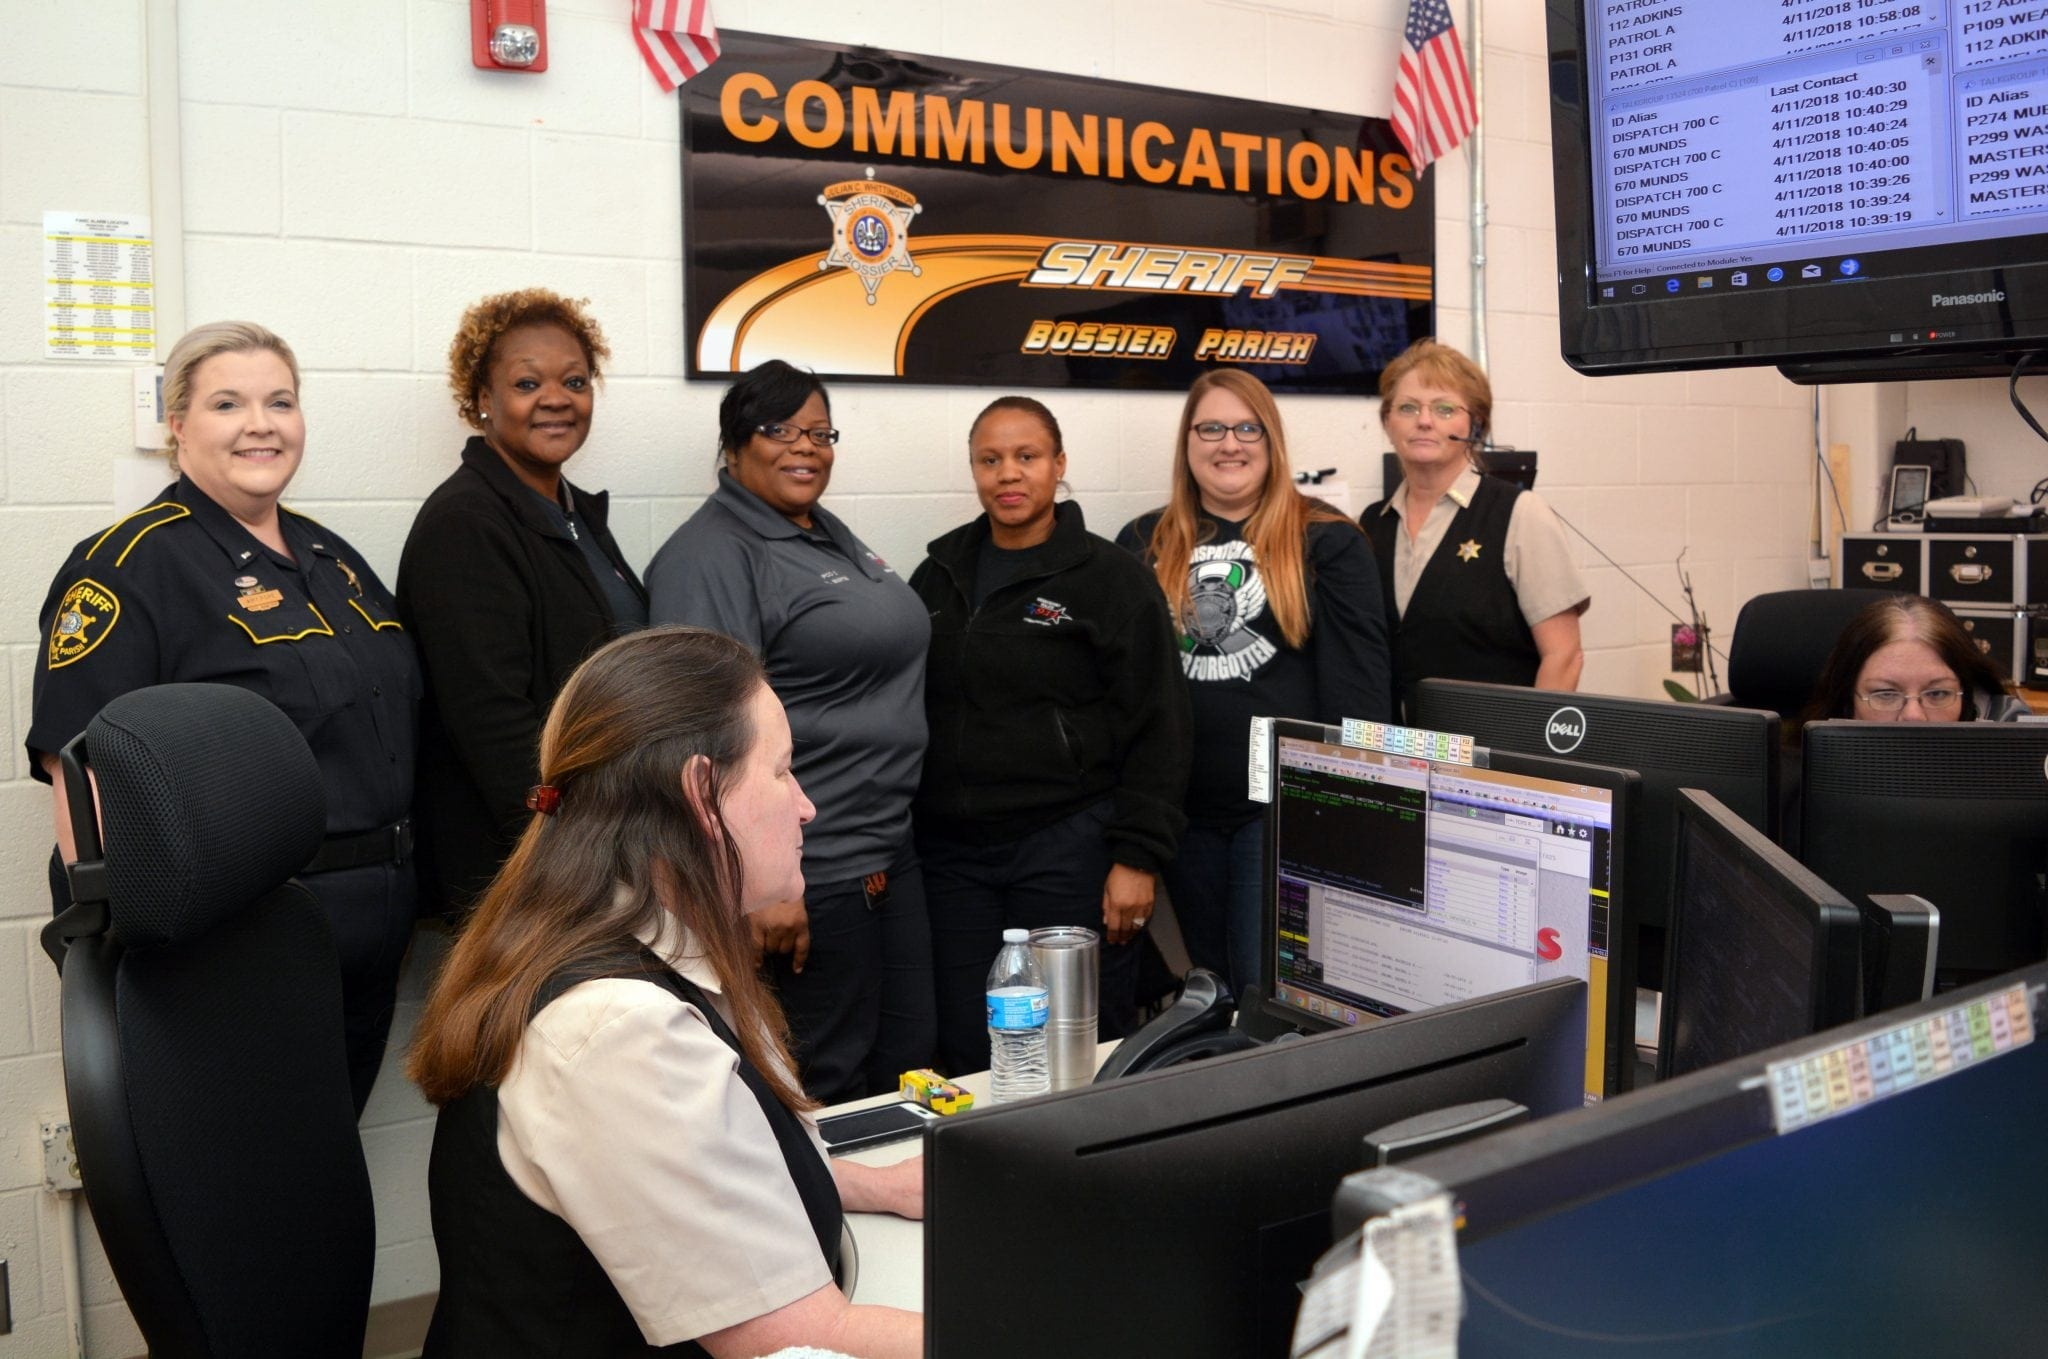 Sheriff honors dispatchers this week | Bossier Press-Tribune